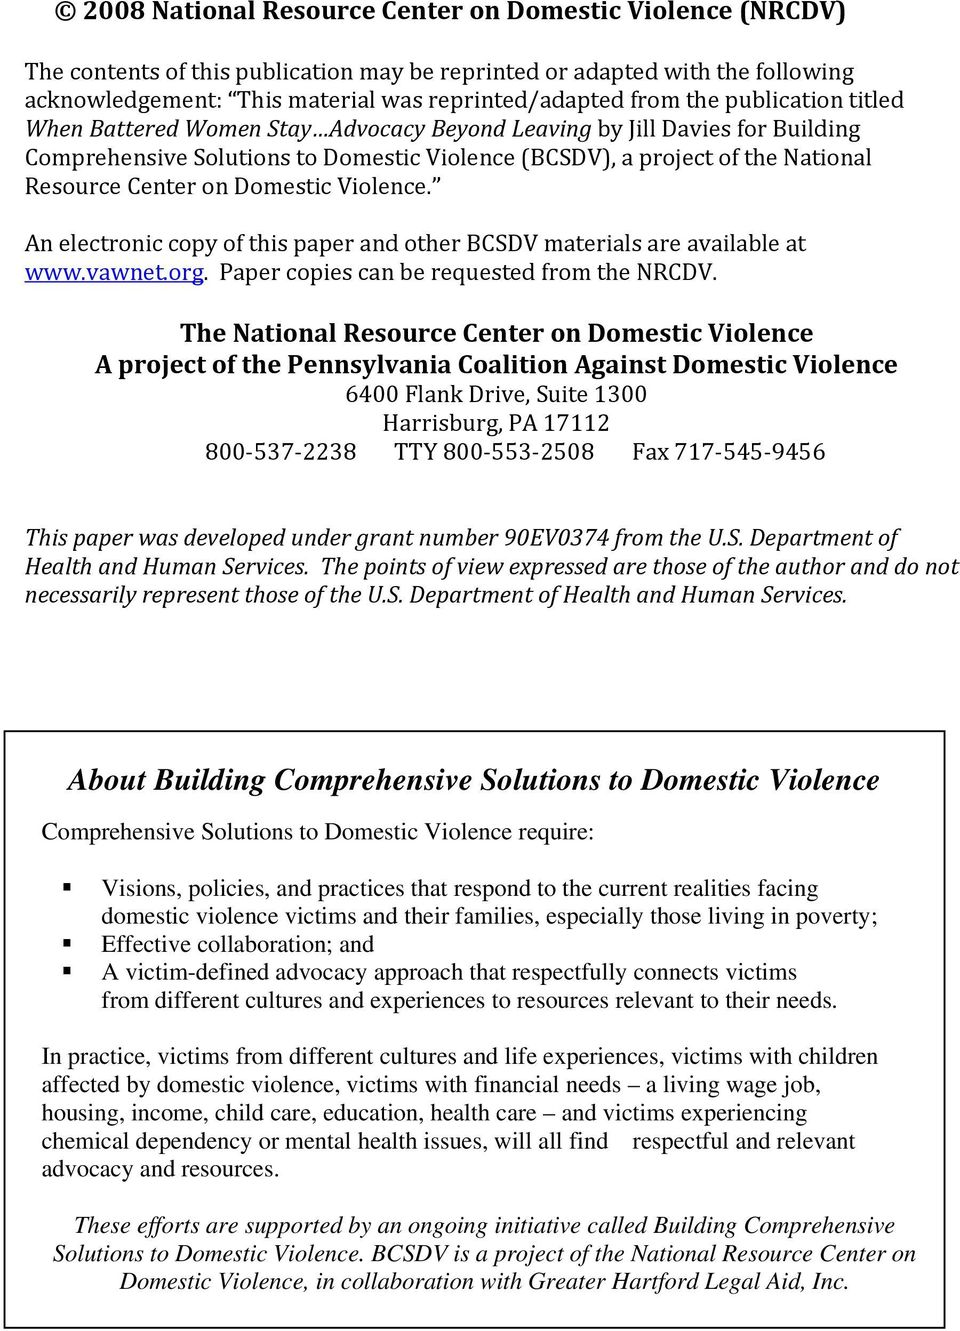 Domestic Violence. An electronic copy of this paper and other BCSDV materials are available at www.vawnet.org. Paper copies can be requested from the NRCDV.